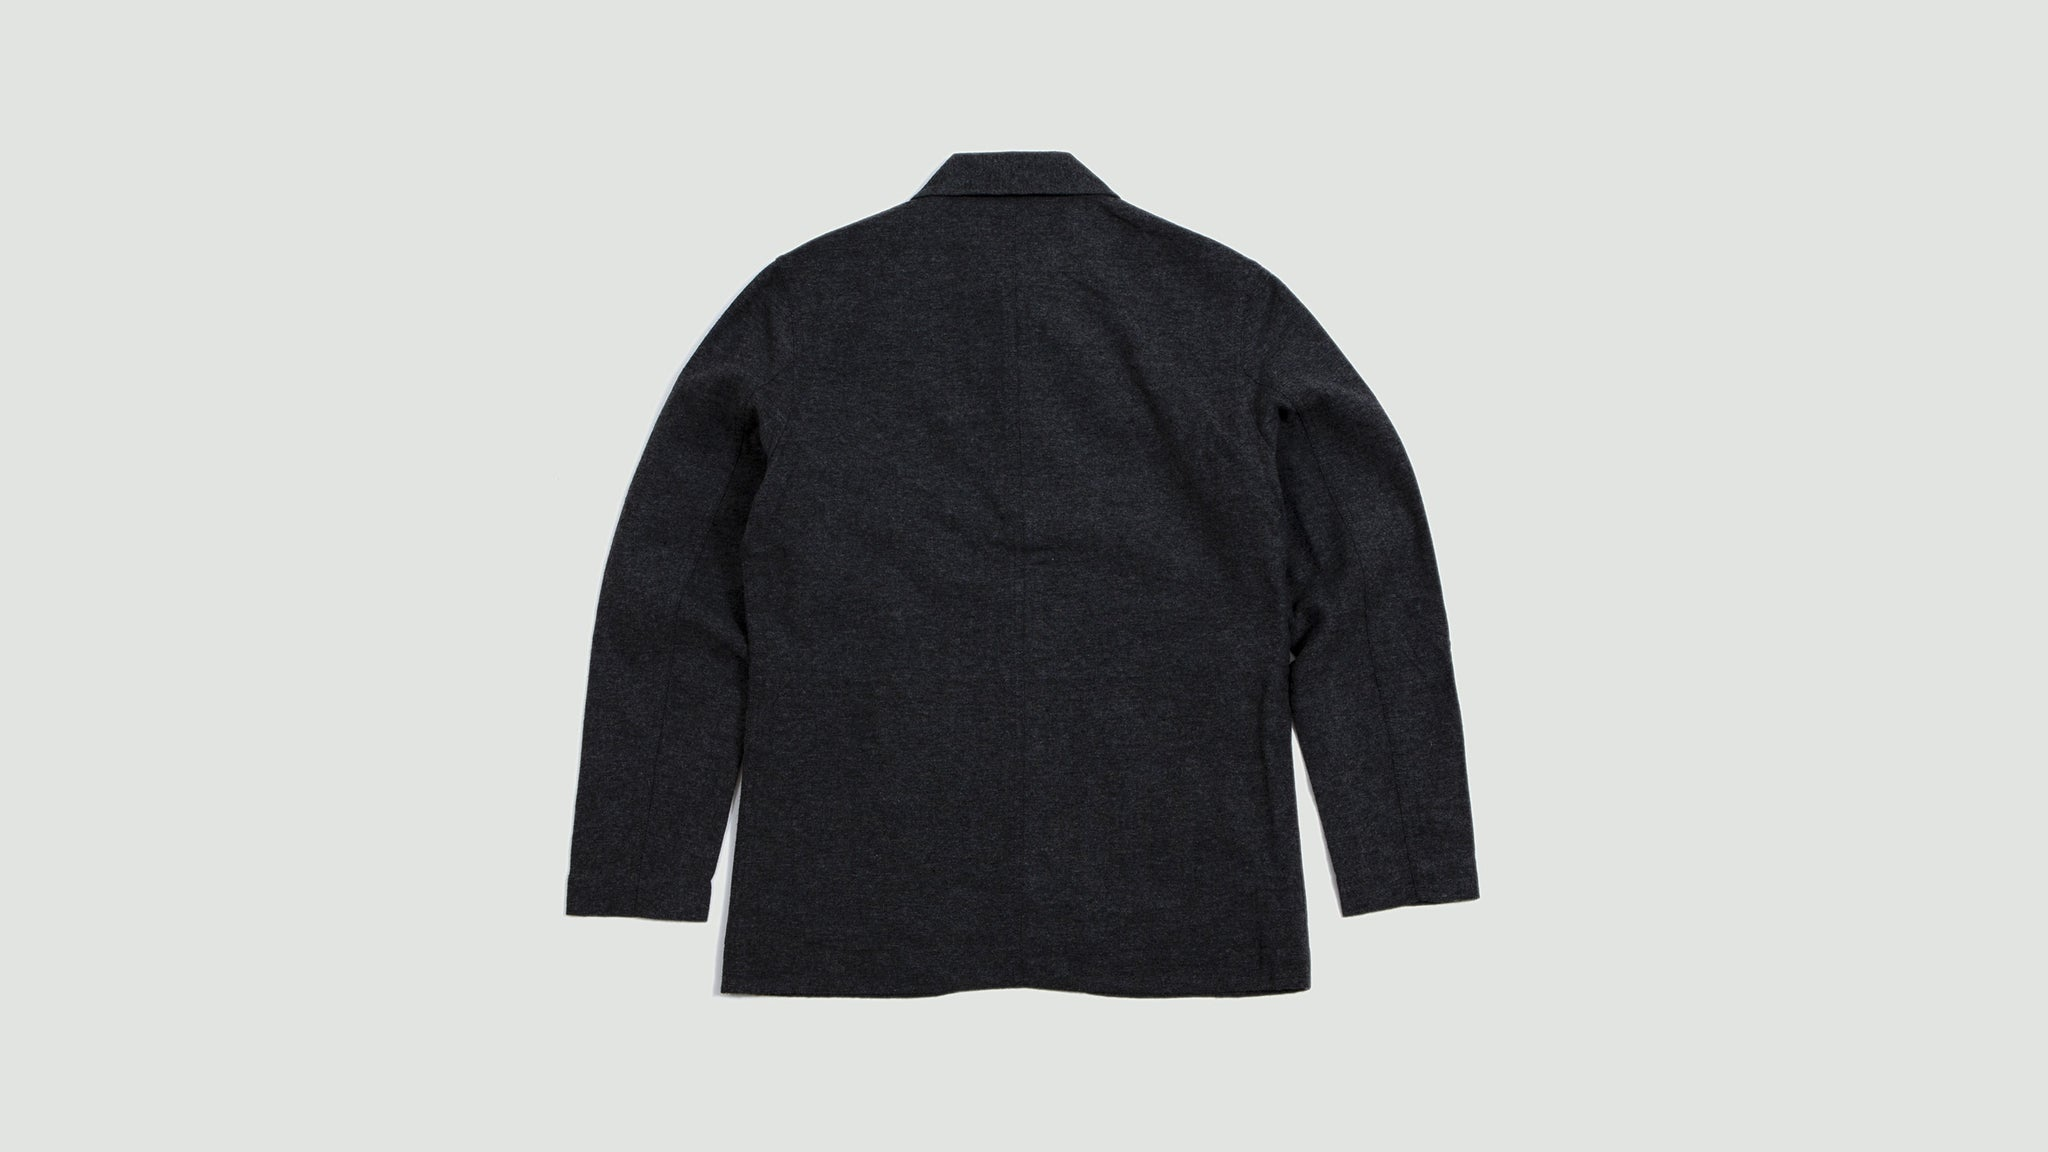 Norfolk Bakers Jacket wool marl grey